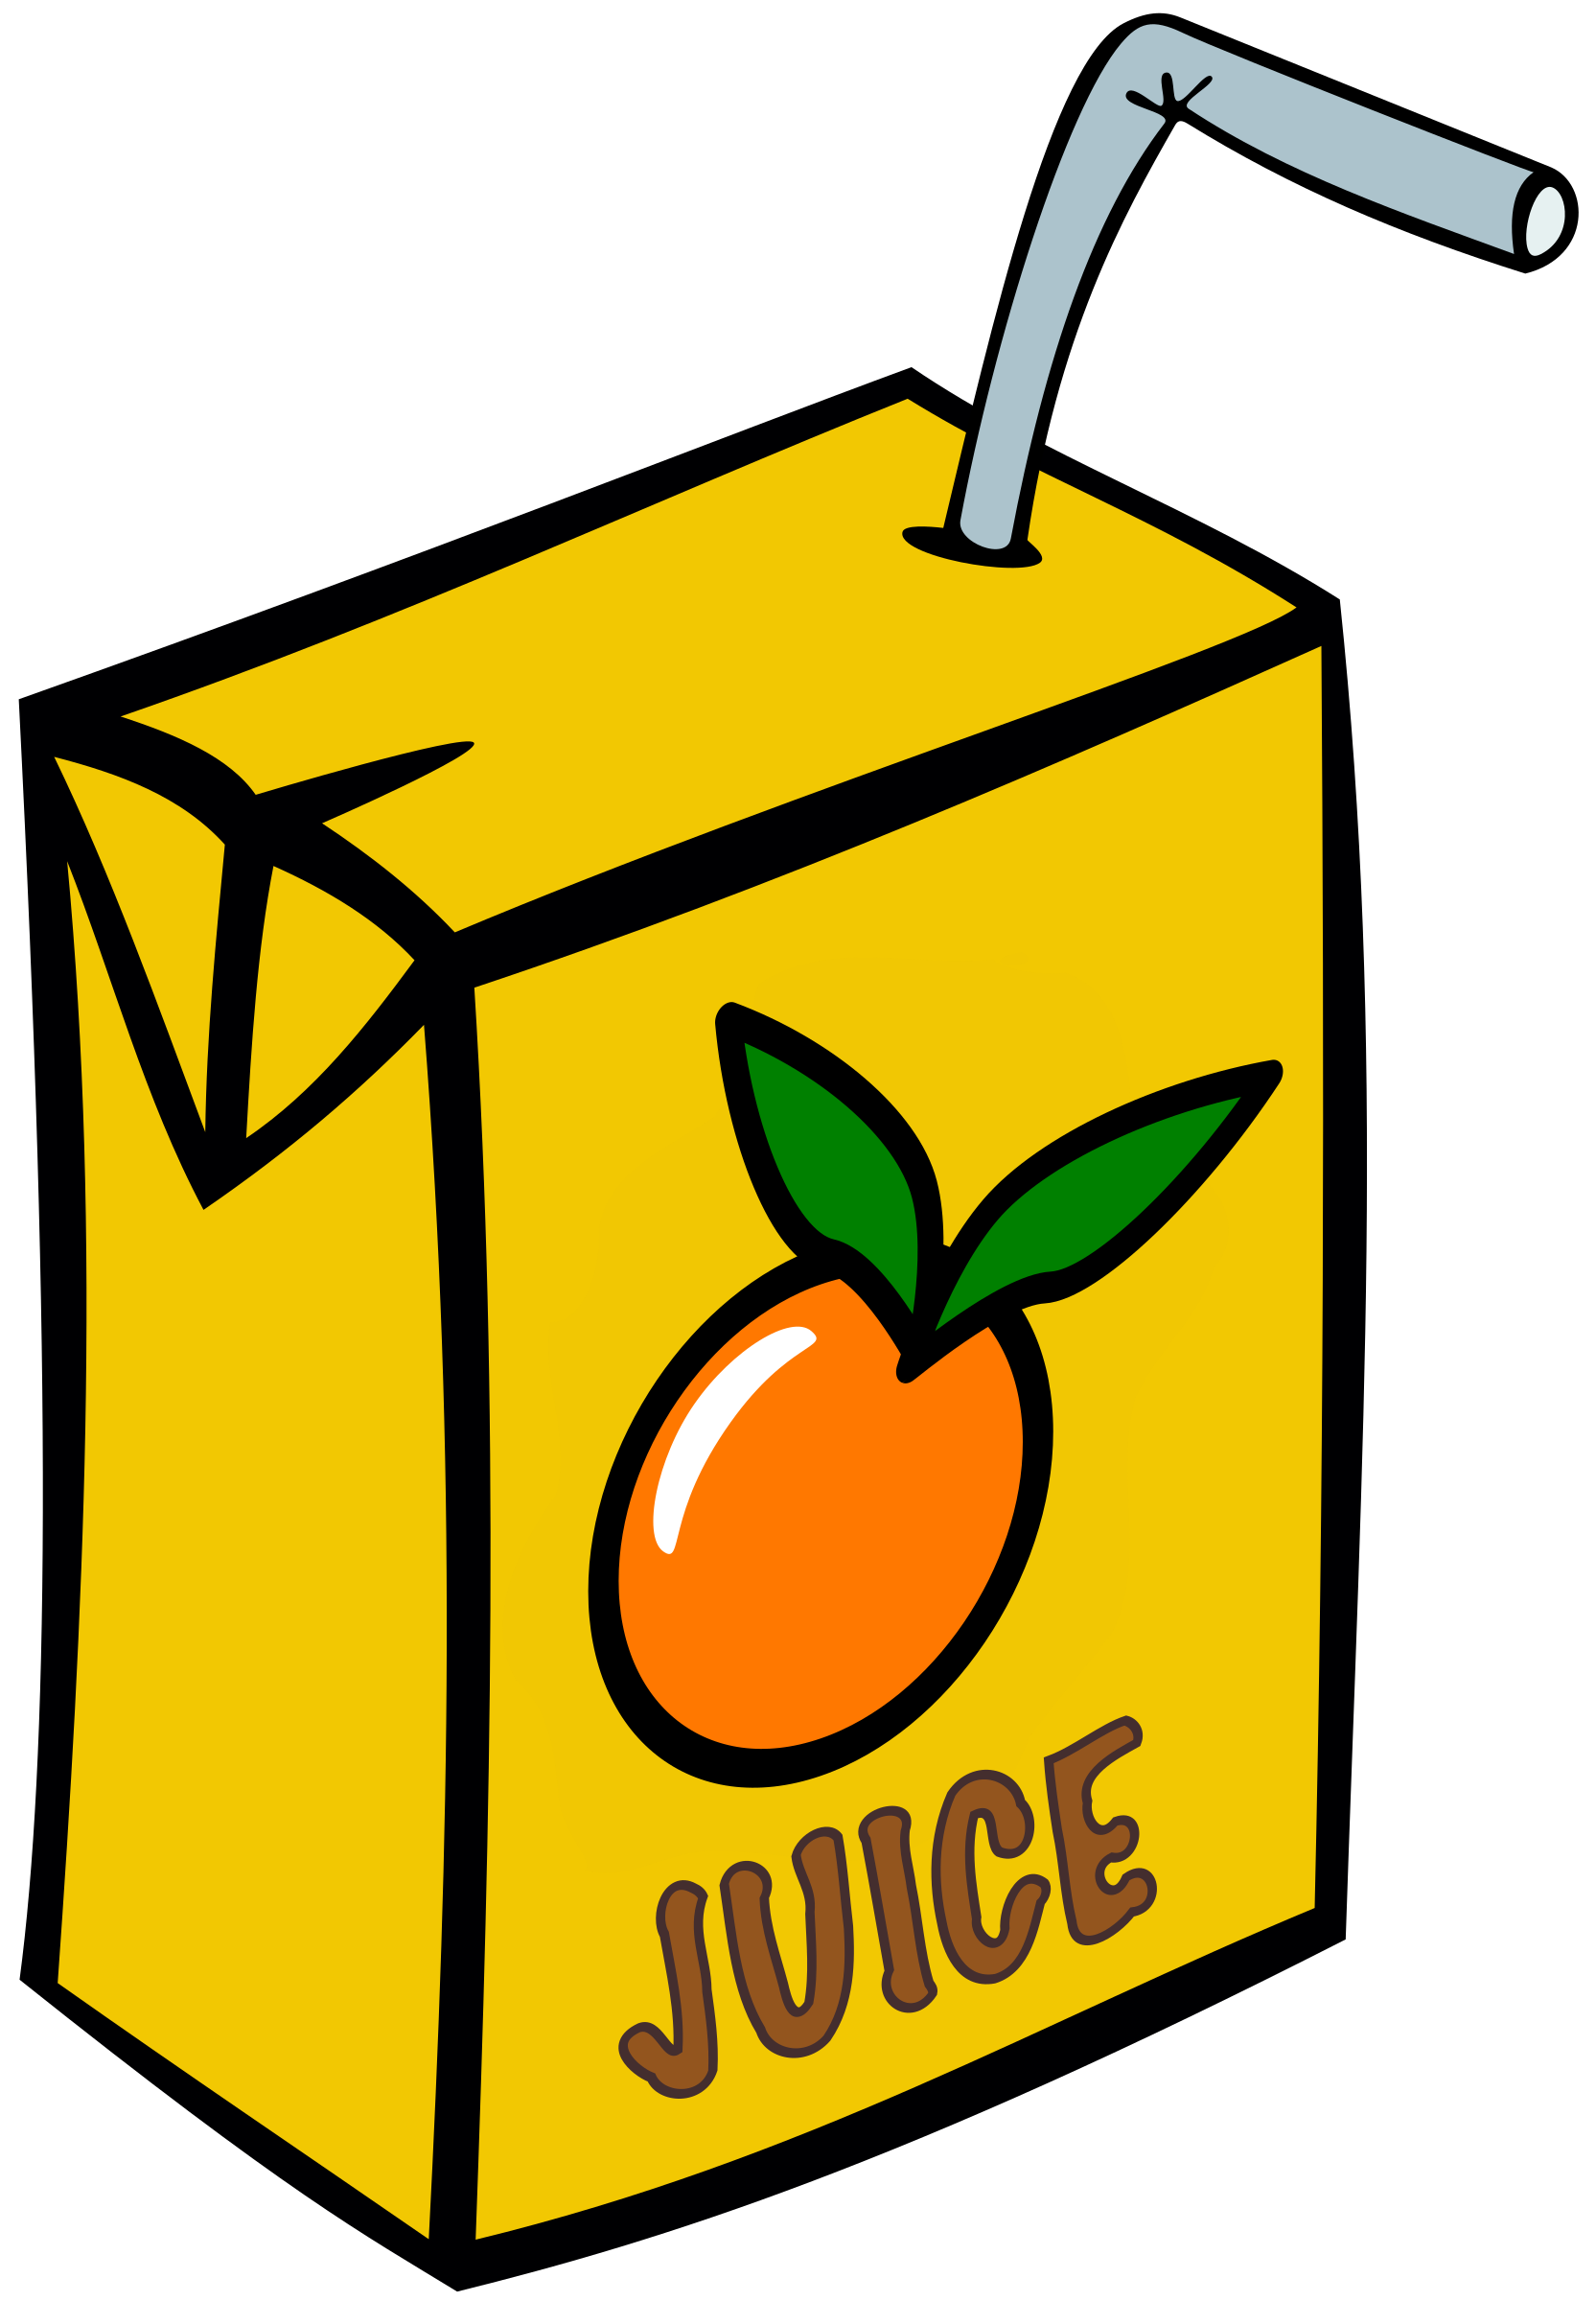 Orange Juice Box Drink by j4p4n